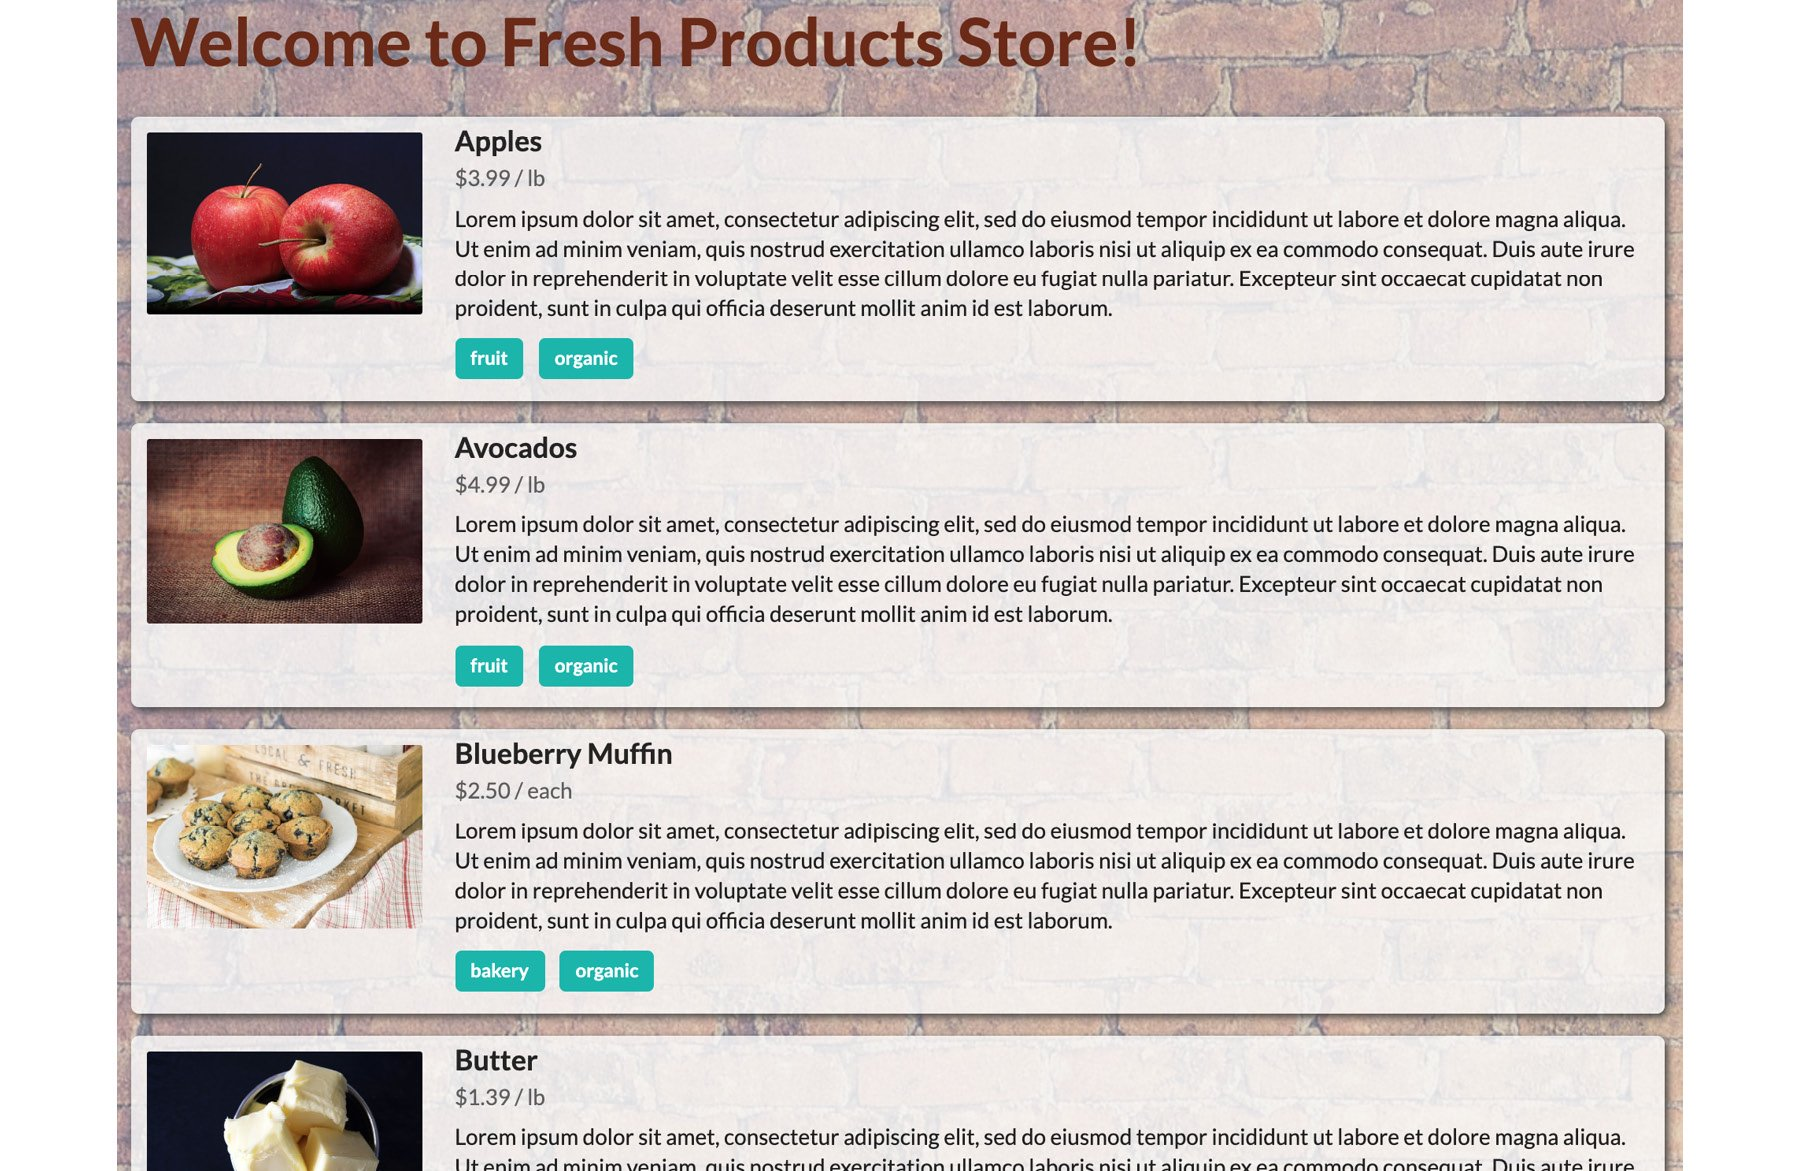 Figure 1.25: Screenshot of the storefront sample page